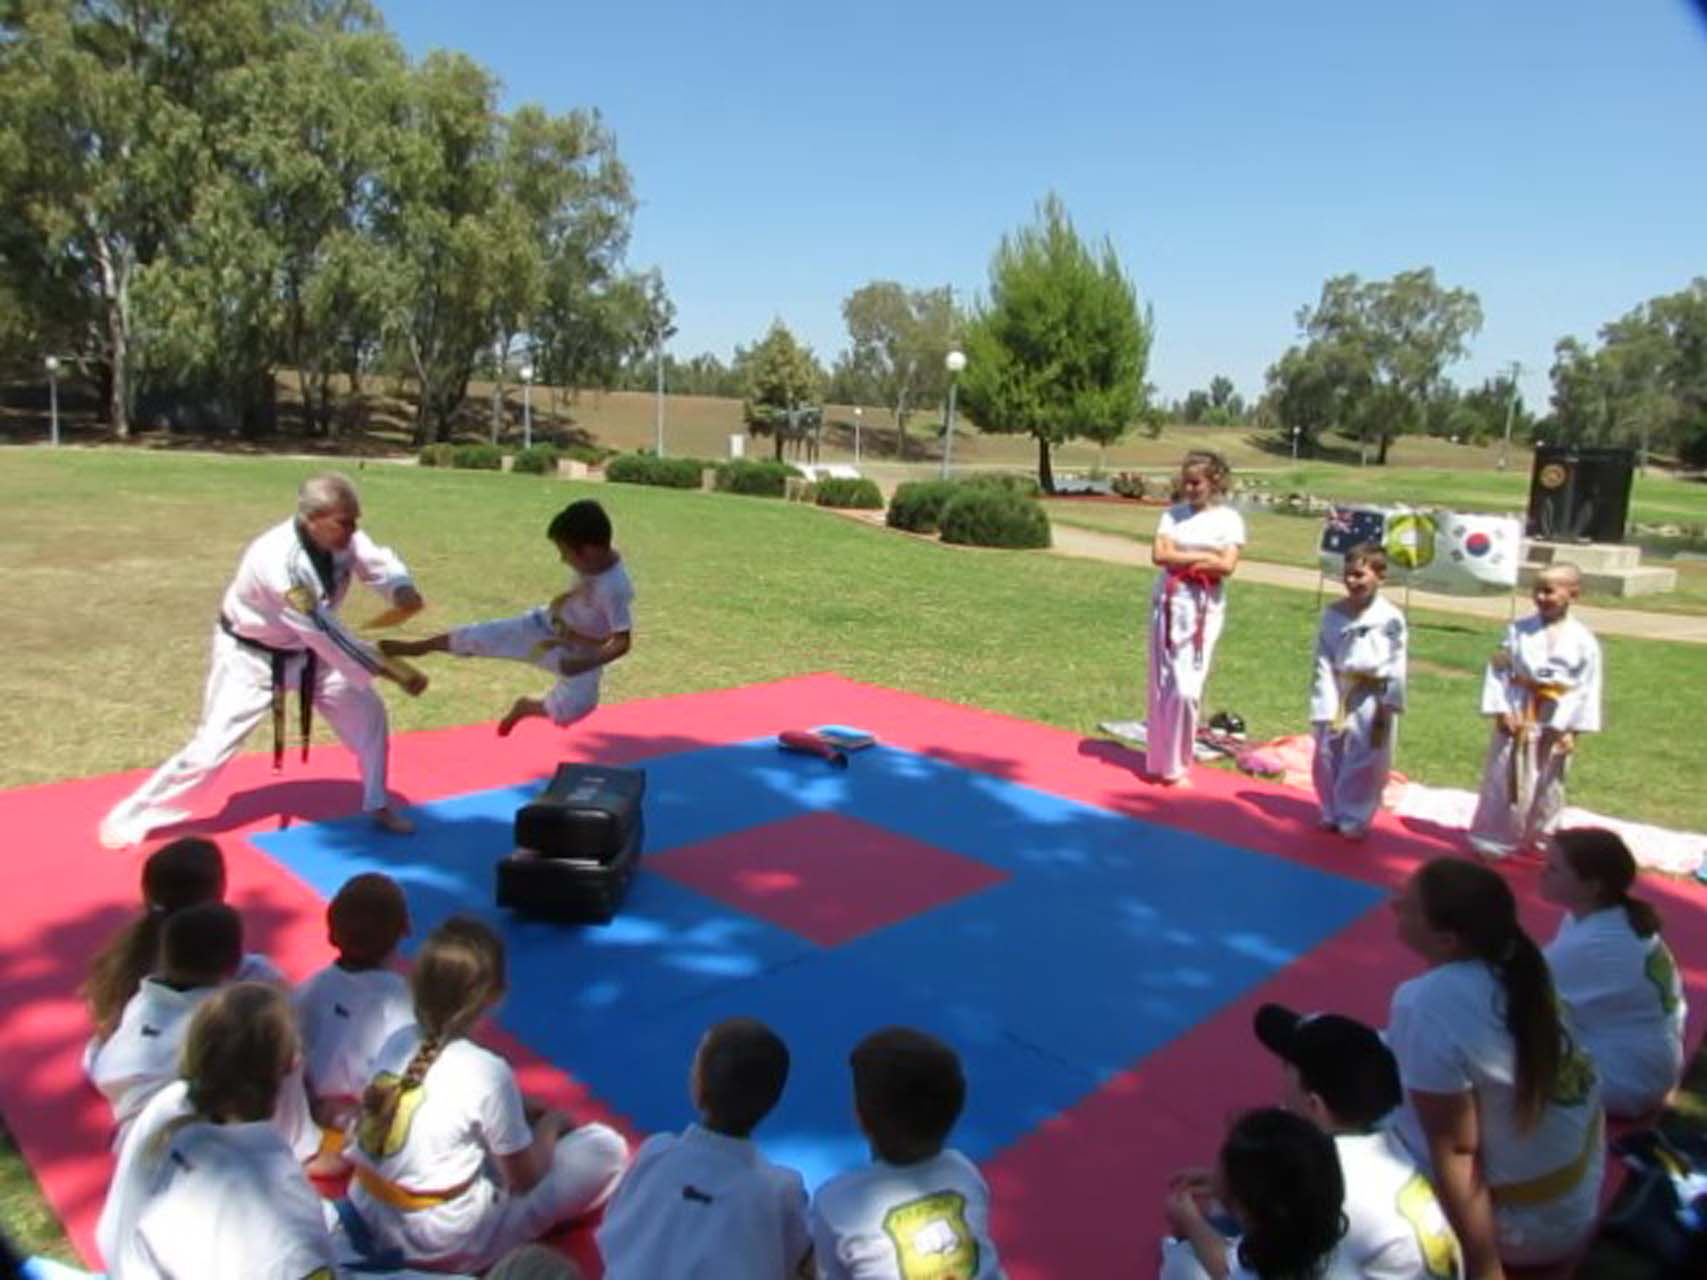 Young taekwondo students in Tamworth practicing martial arts on a red and white rubber mat.